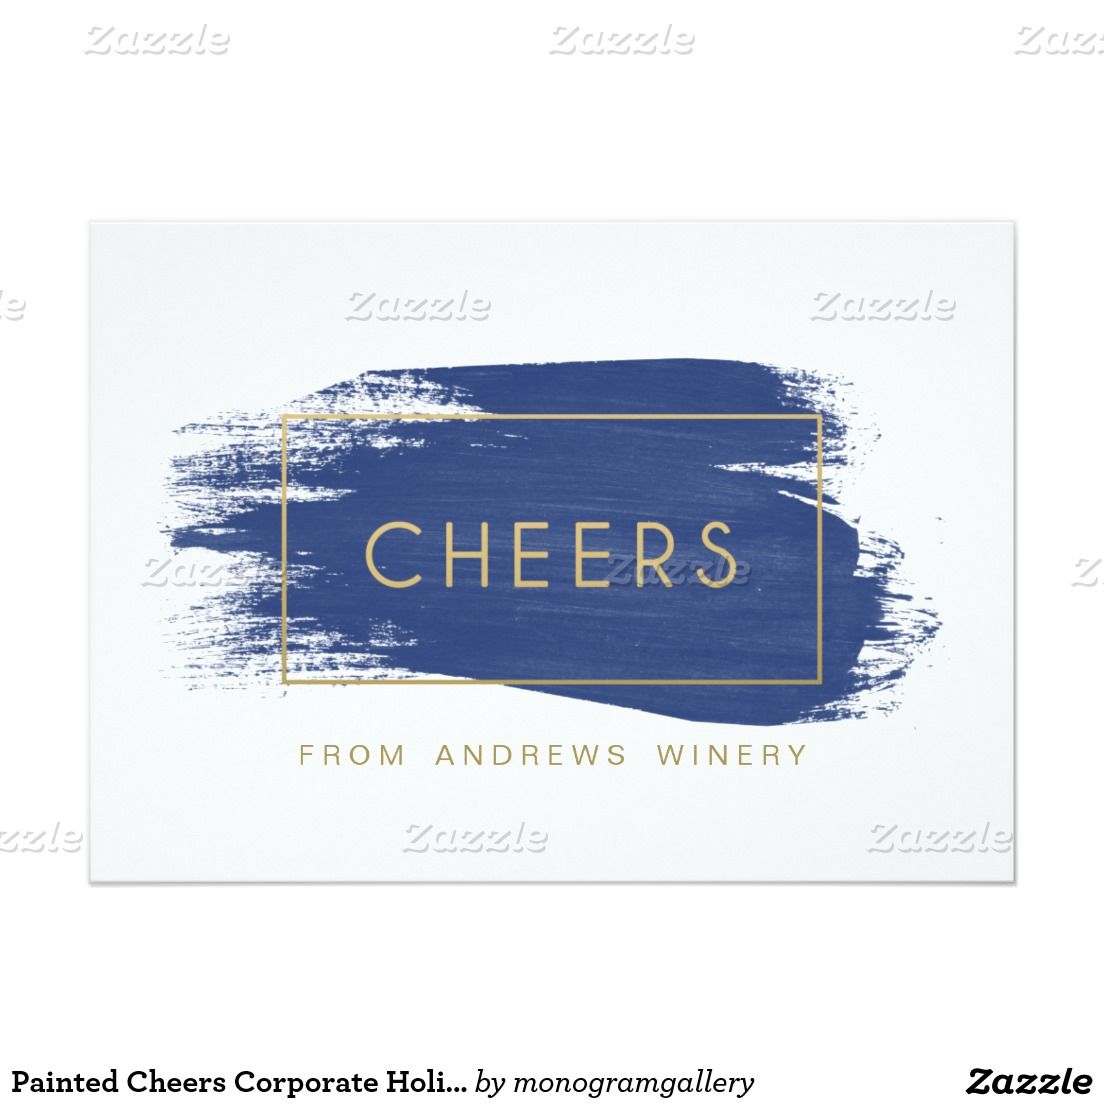 Painted Cheers Corporate Holiday Card | Cheer, Holidays and ...